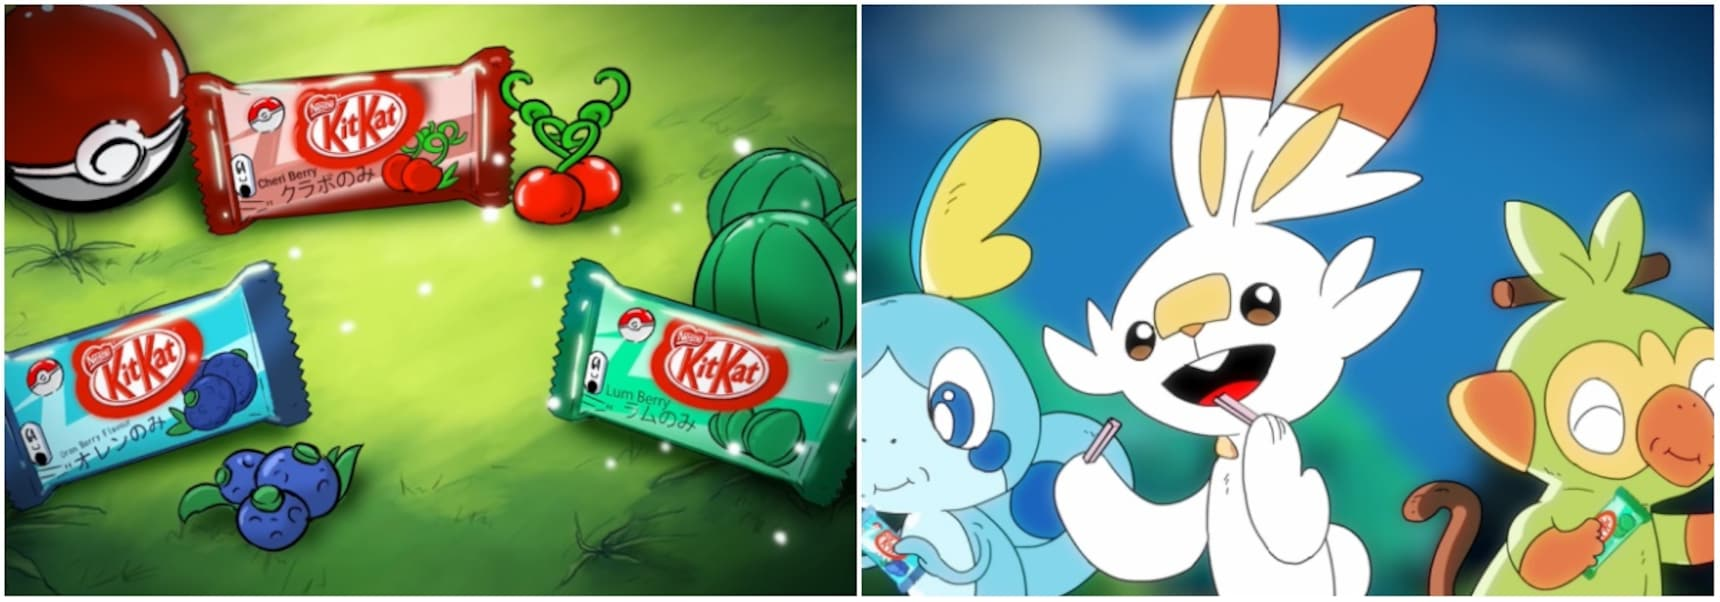 Pokémon Meets KitKat in Awesome Animated Ad